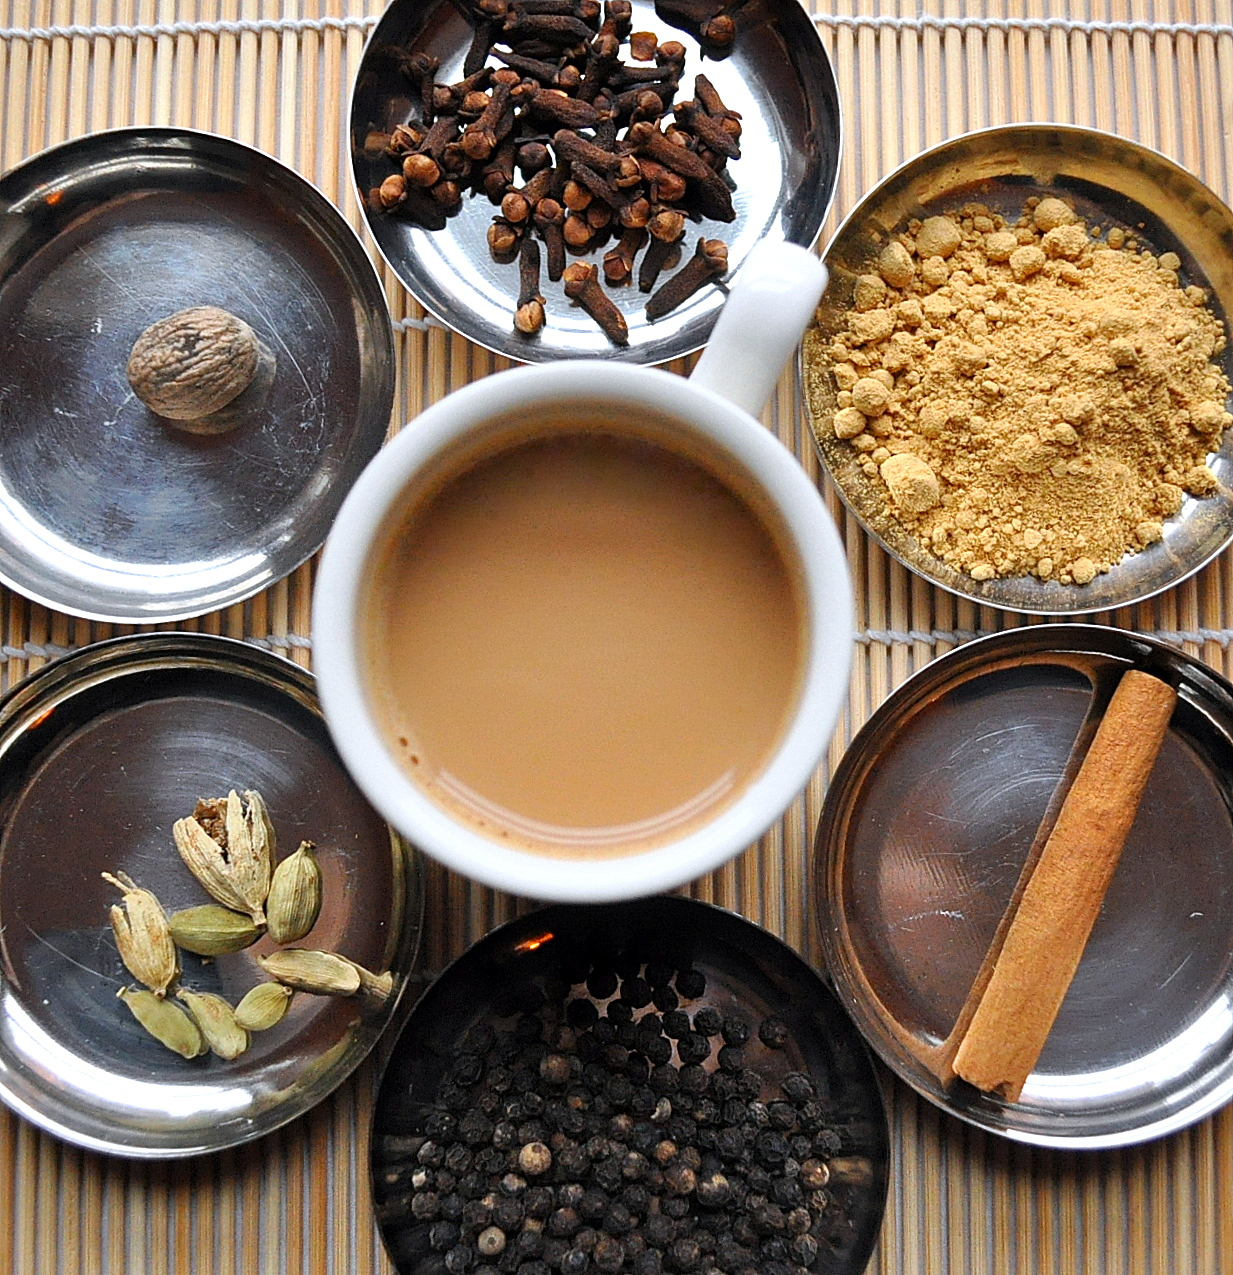 Forget the 'chai teabags' for a minute...create your own healthy concoction...sip away via